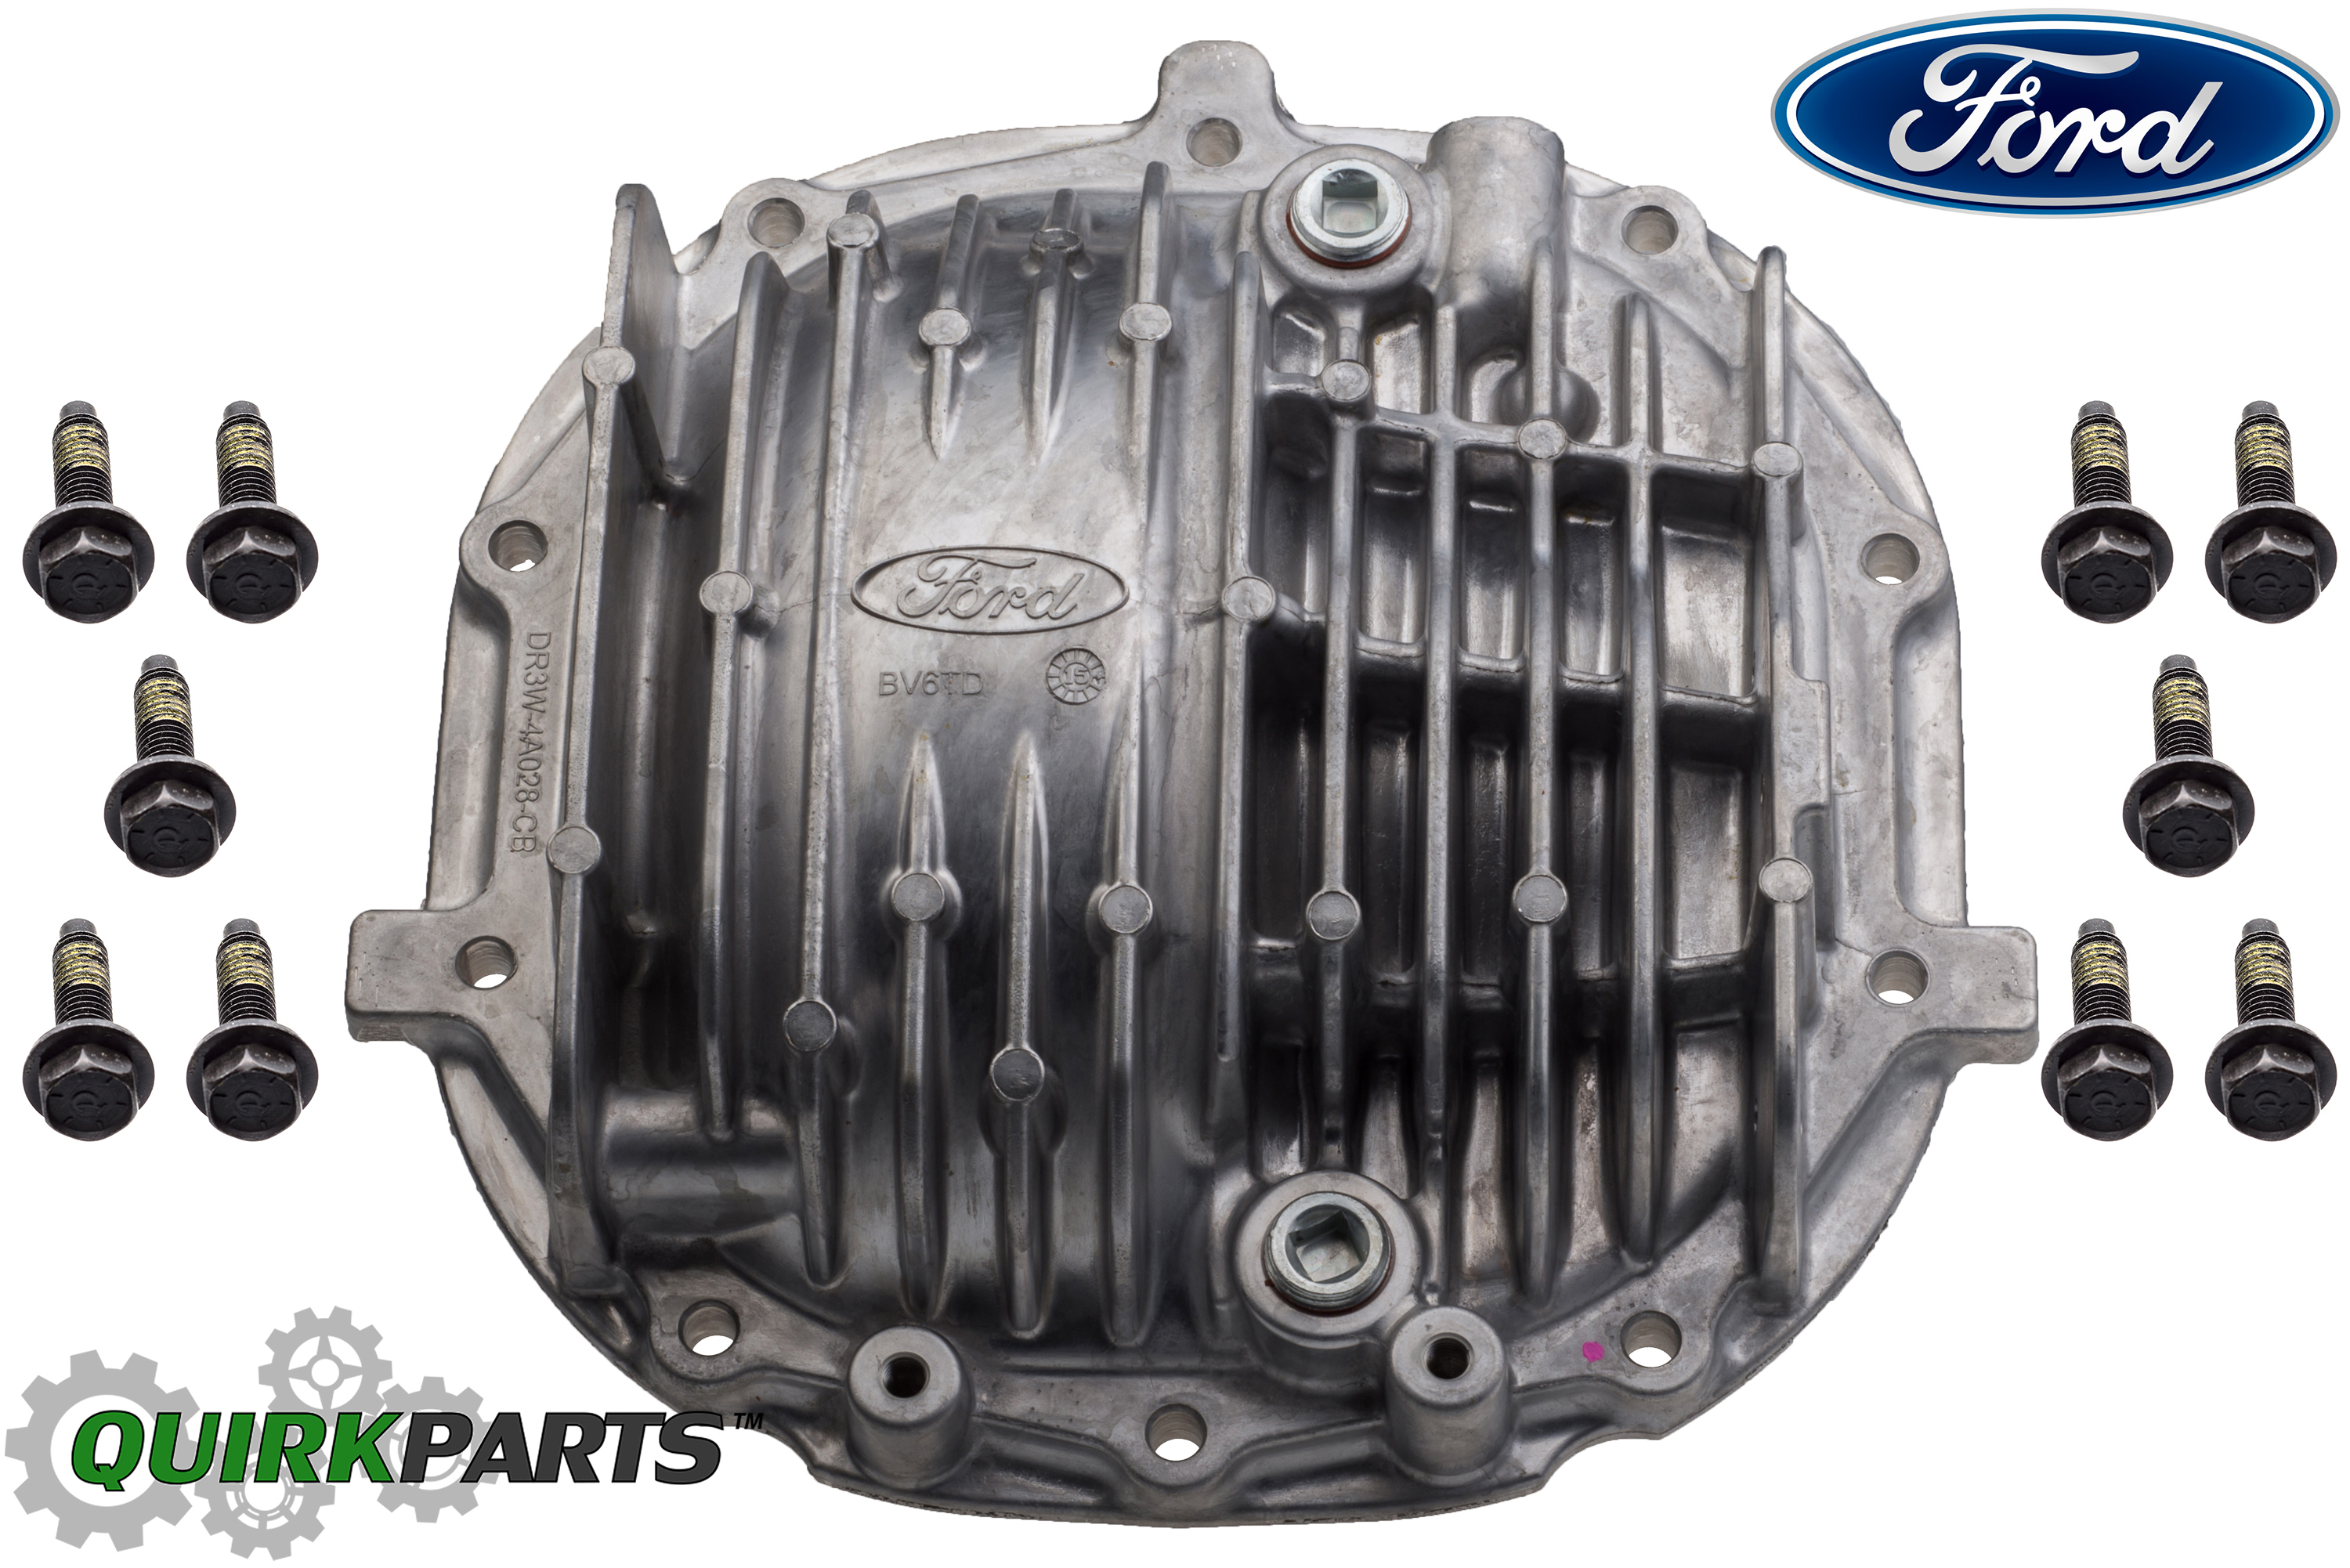 Ford Mustang Gt500 Rear 8 8 U0026quot  Axle Differential Cover Aluminum Finned  U0026 Bolts Oem